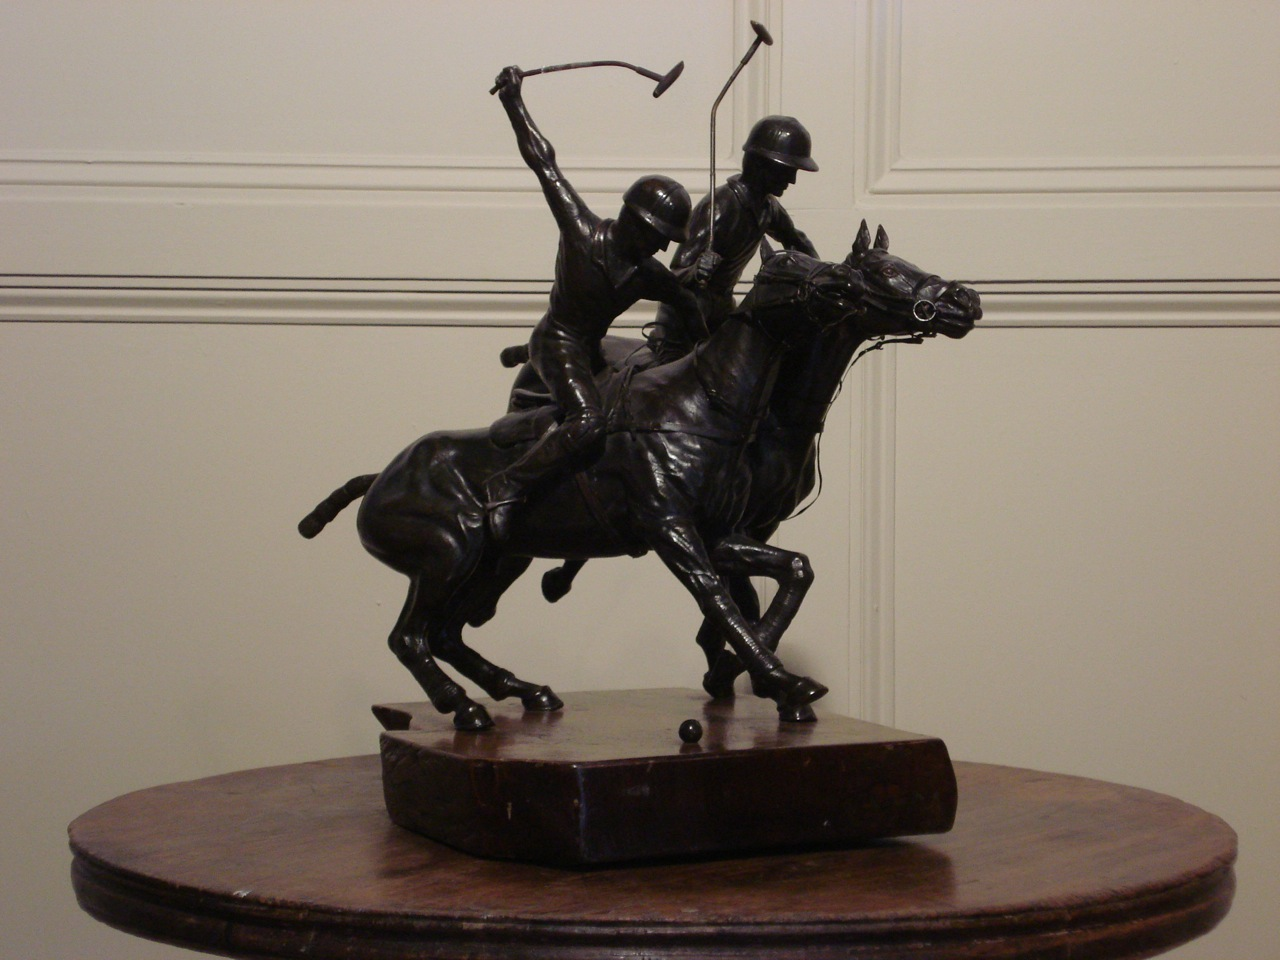 SOLD/20TH C. BRONZE EQUESTRIAN FIGURE GROUP, MODELLED AS TWO POLO PLAY